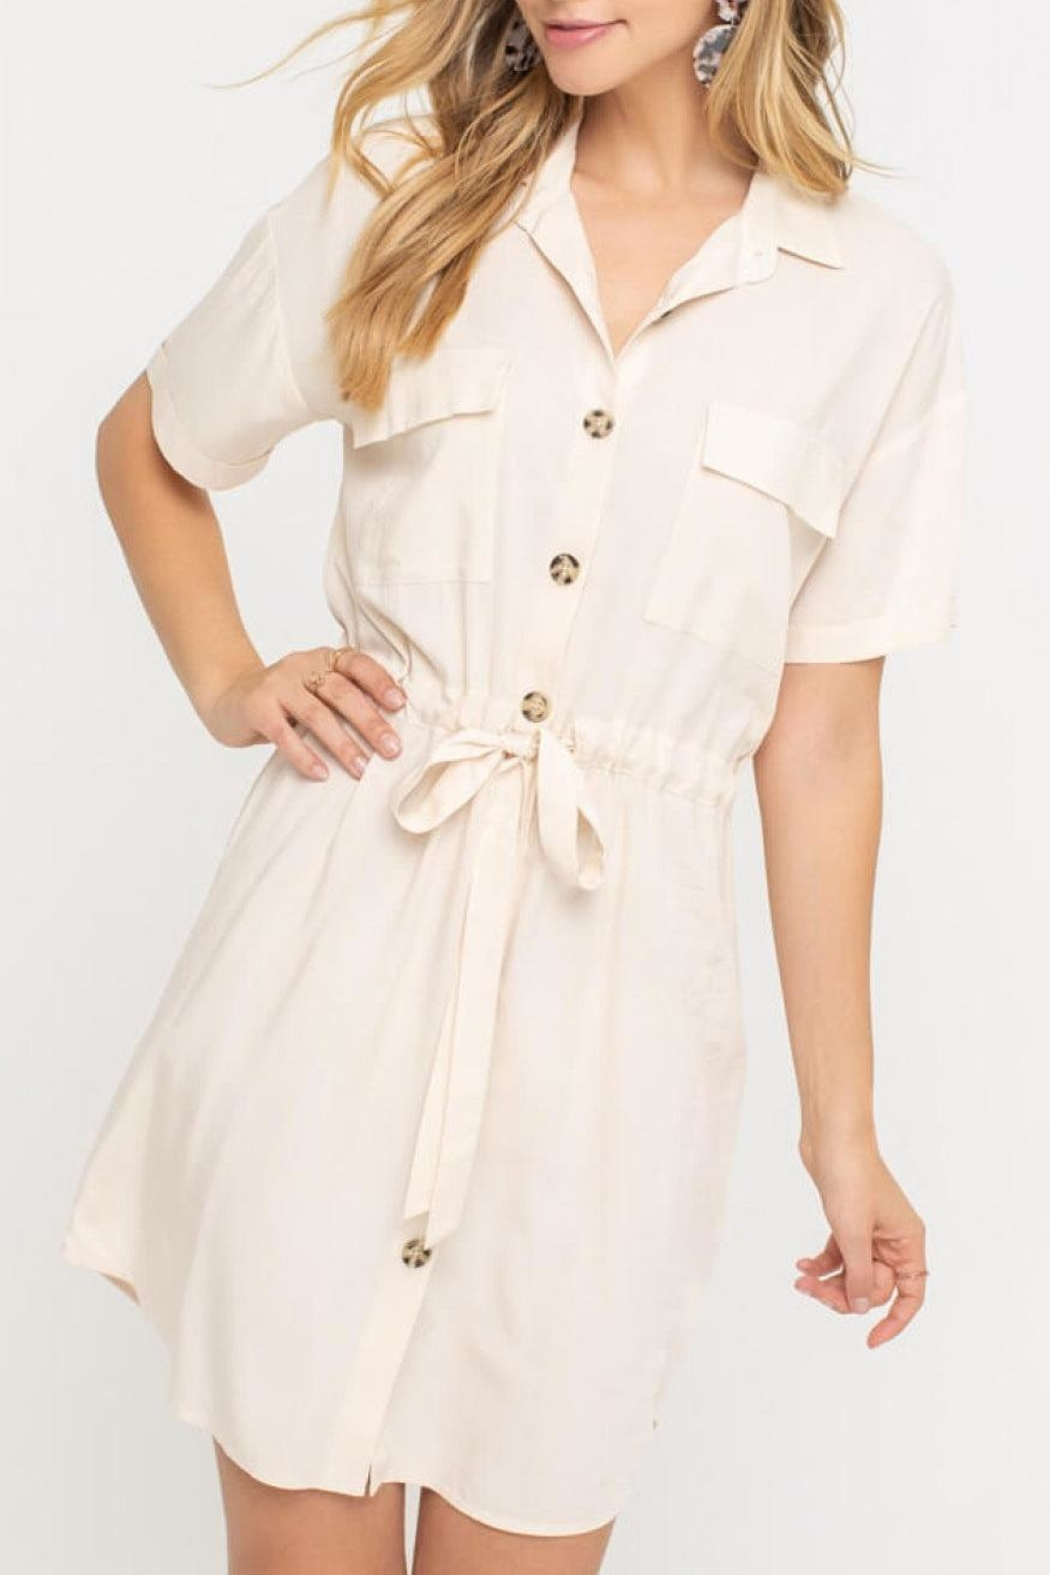 Lush Clothing  Drawstring Shirt Dress - Main Image